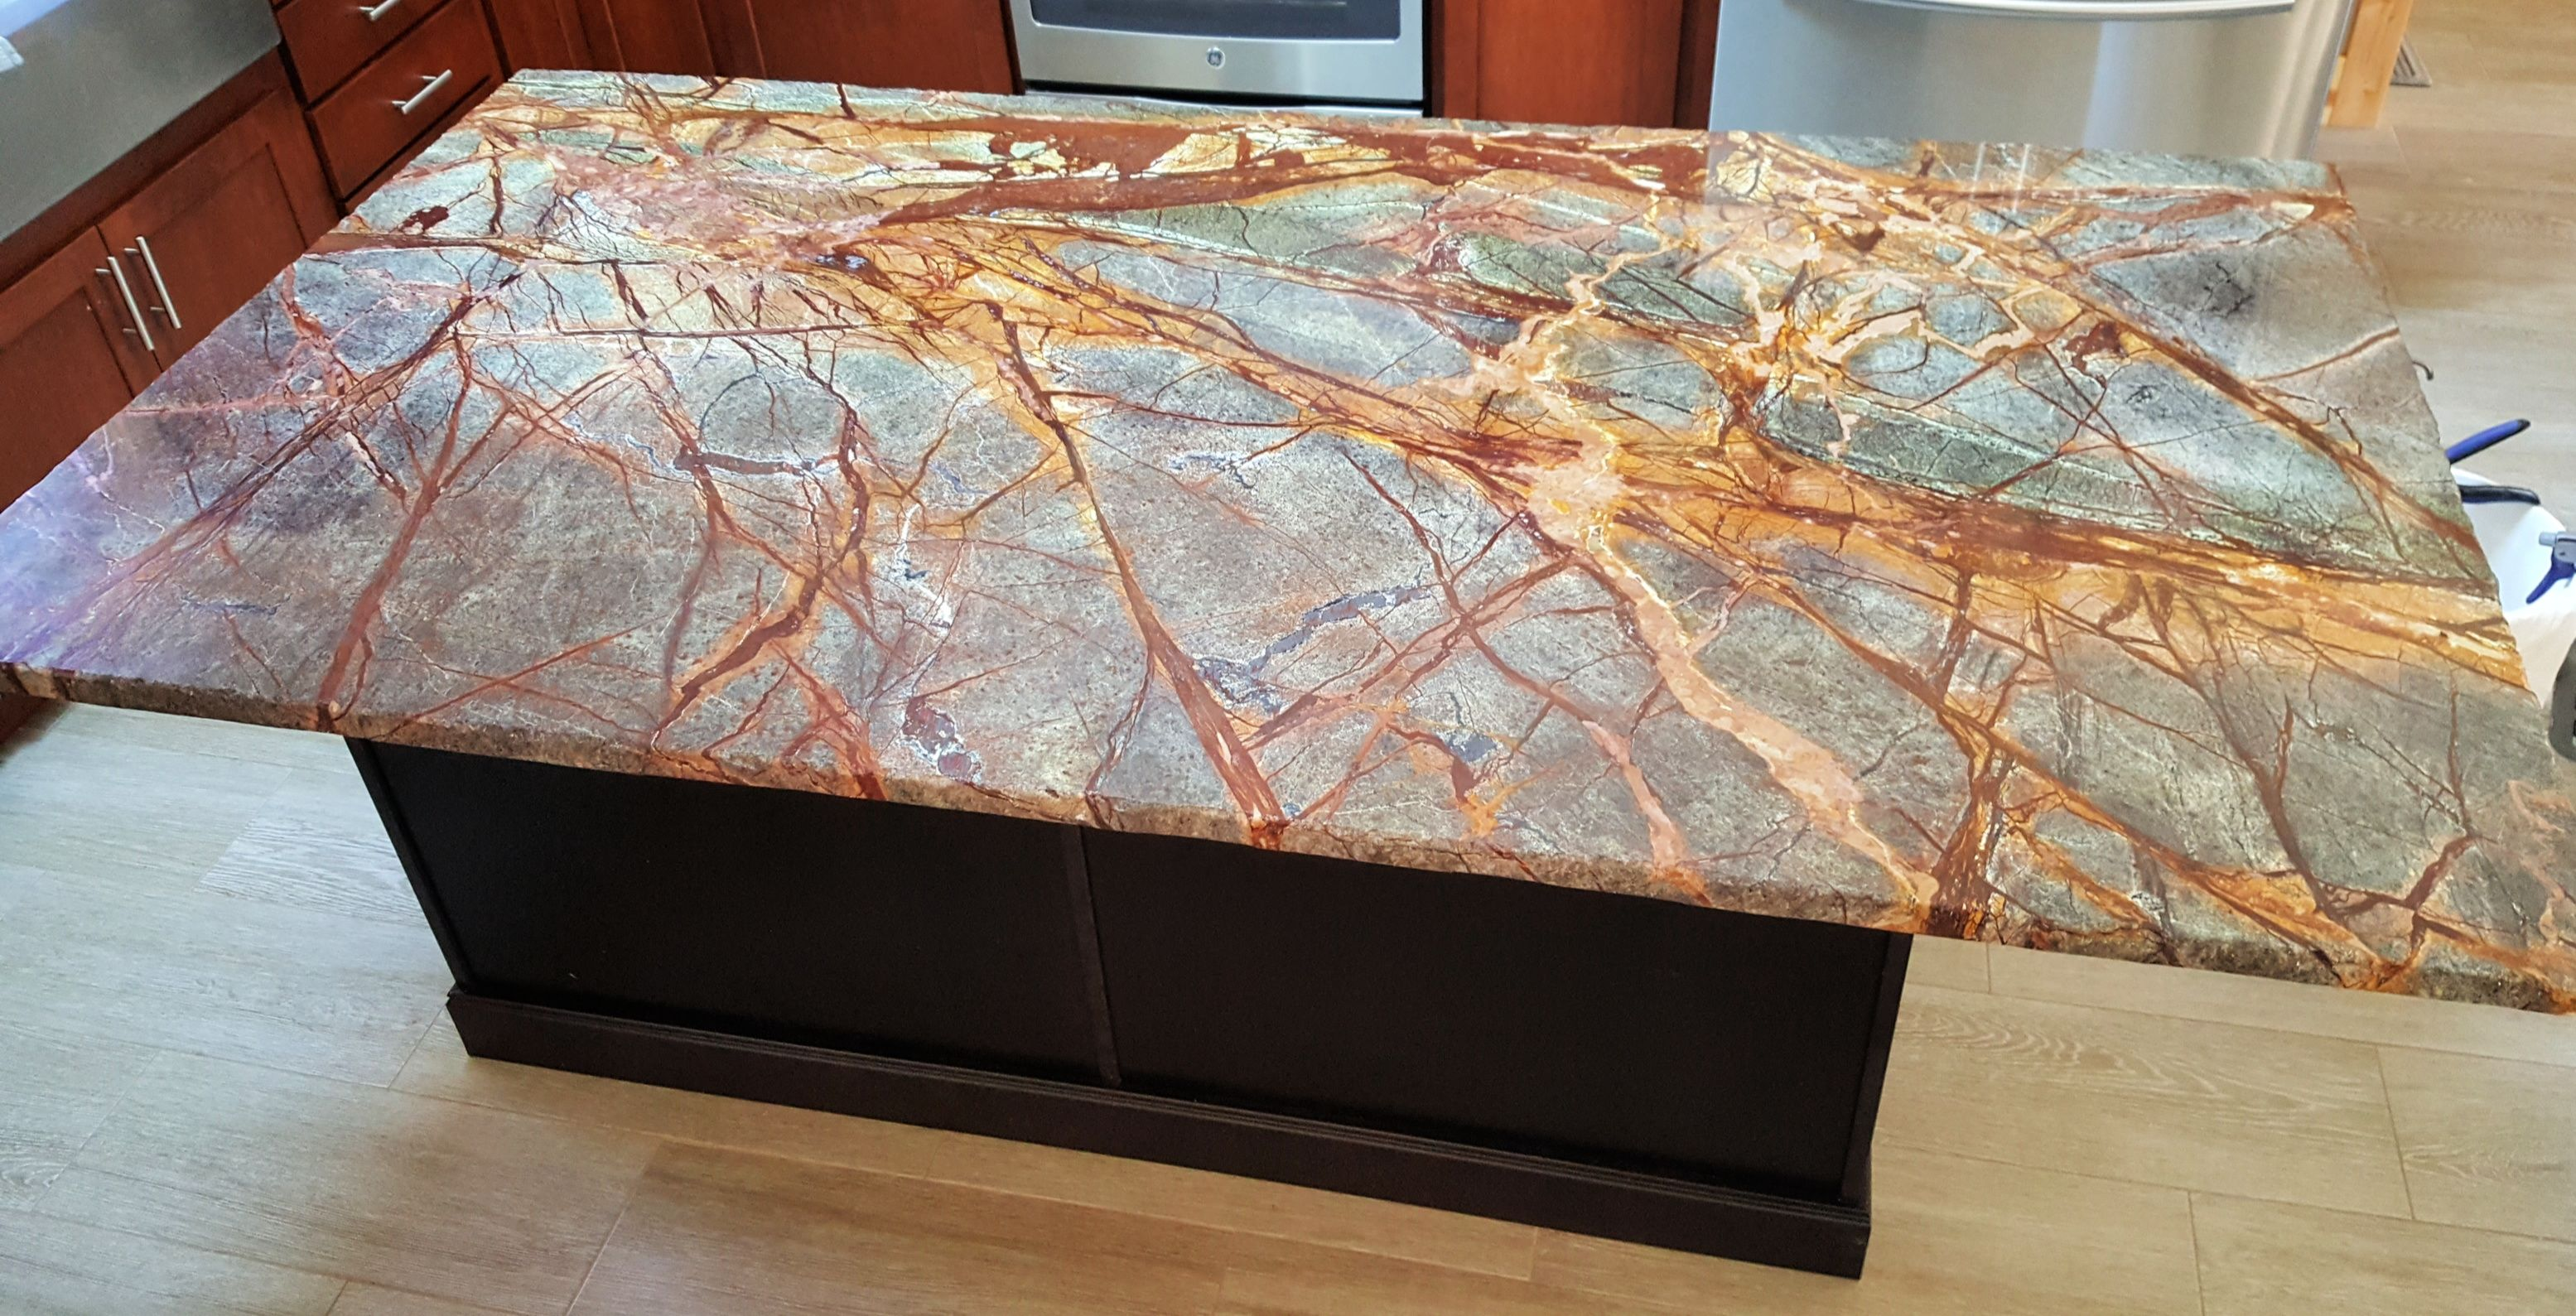 Crowe Custom Countertops In Atlanta Ga Has The Knowledge And Experience To Help You Achiev In 2020 Custom Countertops Granite Countertops Engineered Stone Countertops